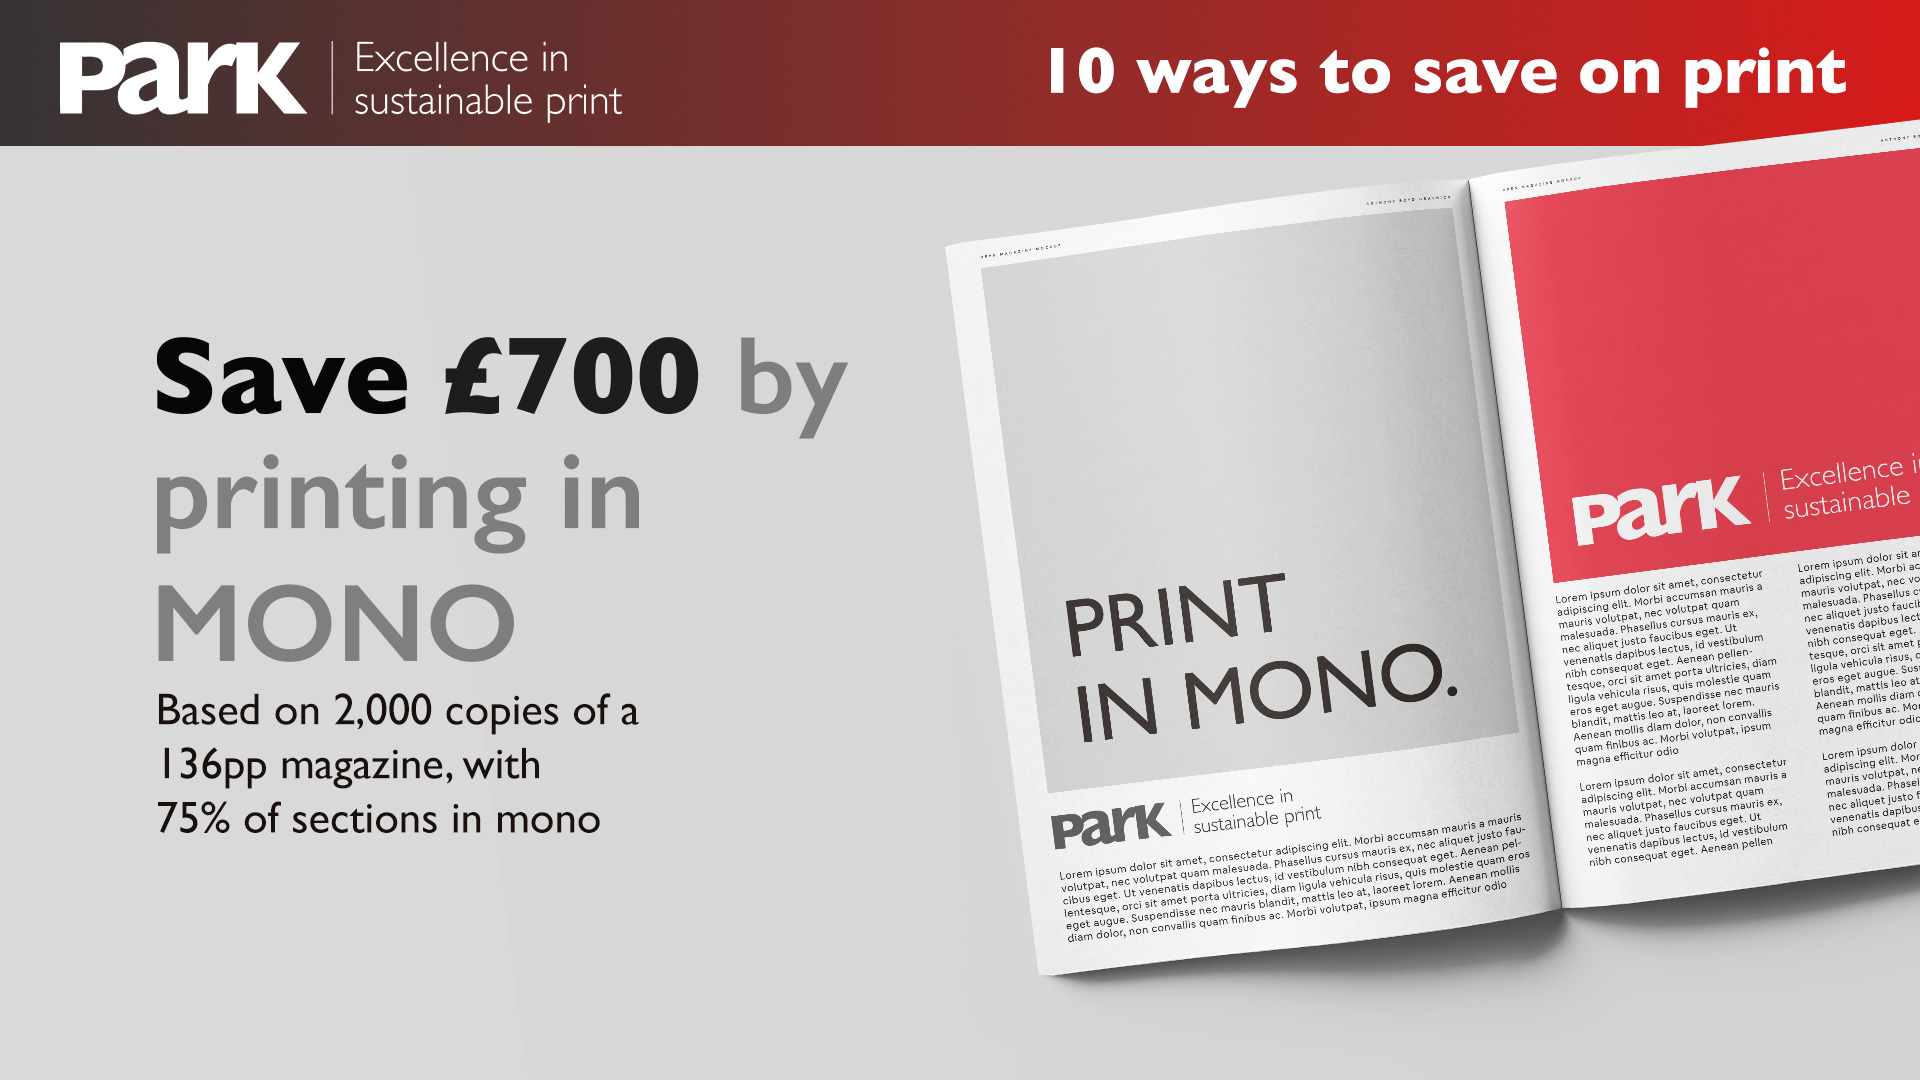 print in mono to reduce print costs